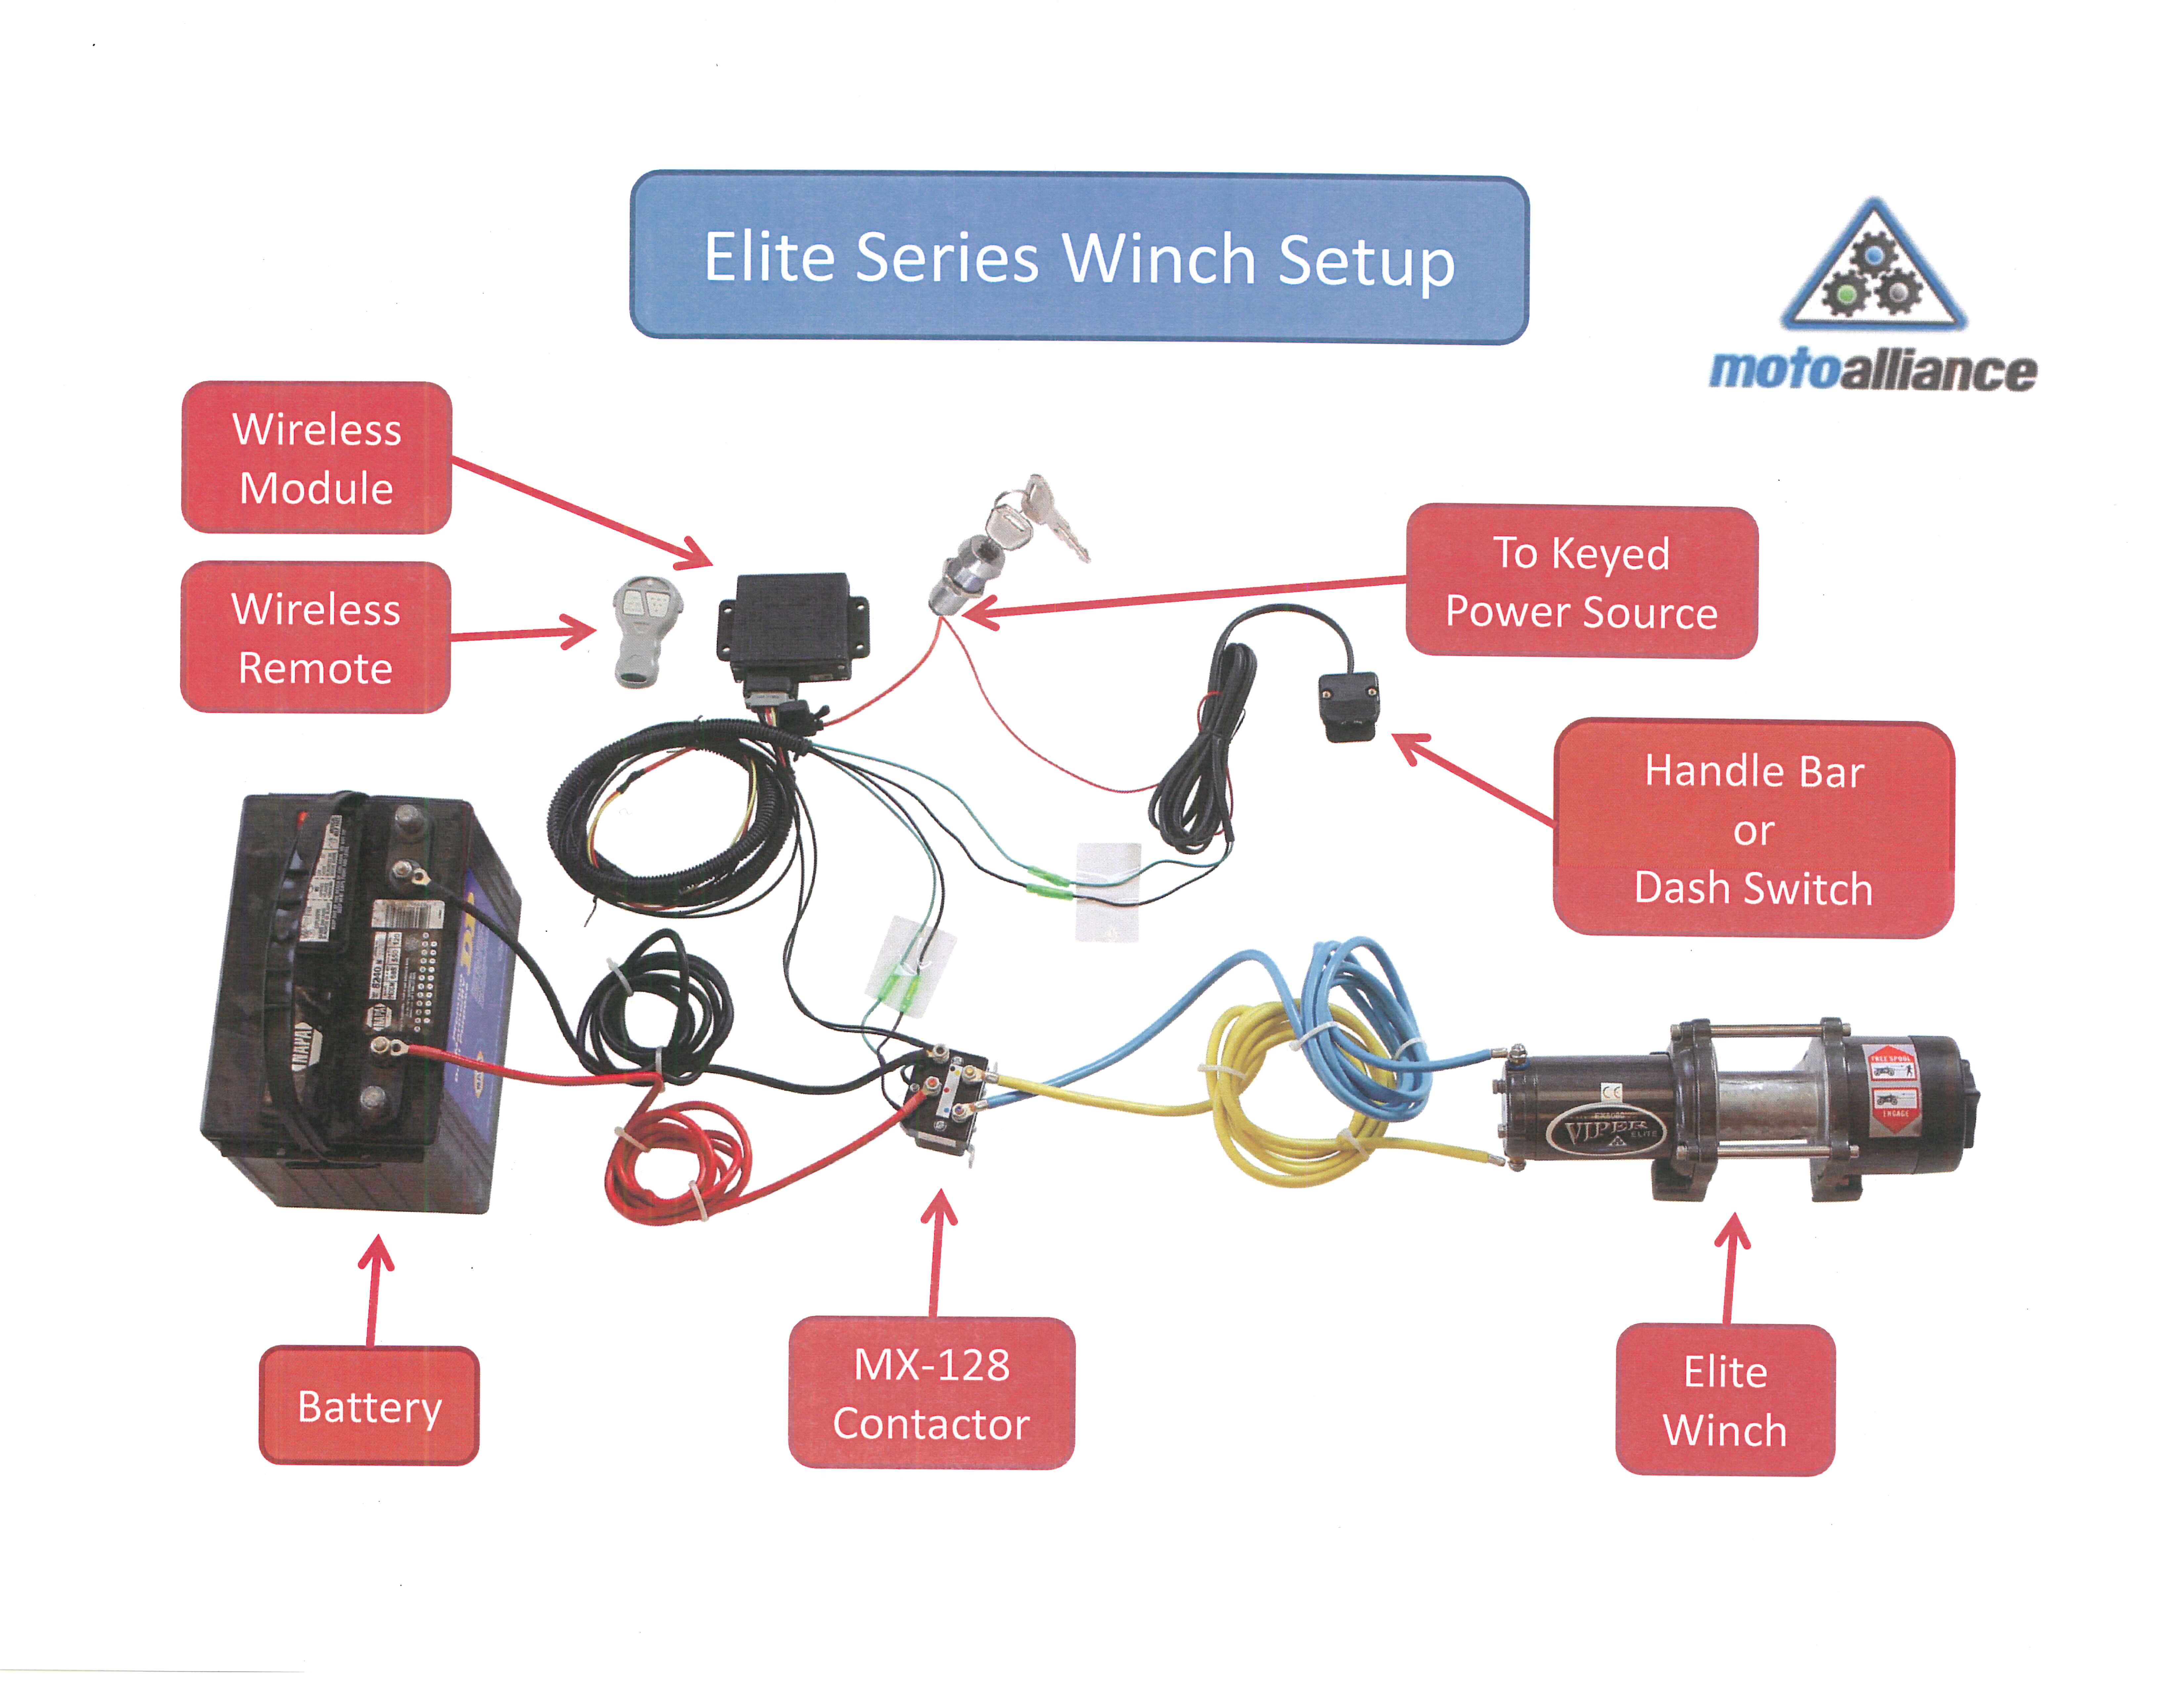 Viper Elite Wireless Remote Installation ? | PRC Polaris ... on circuit board troubleshooting, circuit board circuit, circuit board power, circuit board bmw, circuit diagram software, circuit board timer, circuit board generator, circuit board cooling, circuit diagram for wireless system, circuit board fuel pump, circuit board chassis, circuit board electrical, circuit board thermostat, circuit board air conditioning diagram, circuit board radio, circuit board dimensions, circuit board solenoid, circuit board maintenance, circuit board parts diagram, gas furnace control board diagram,